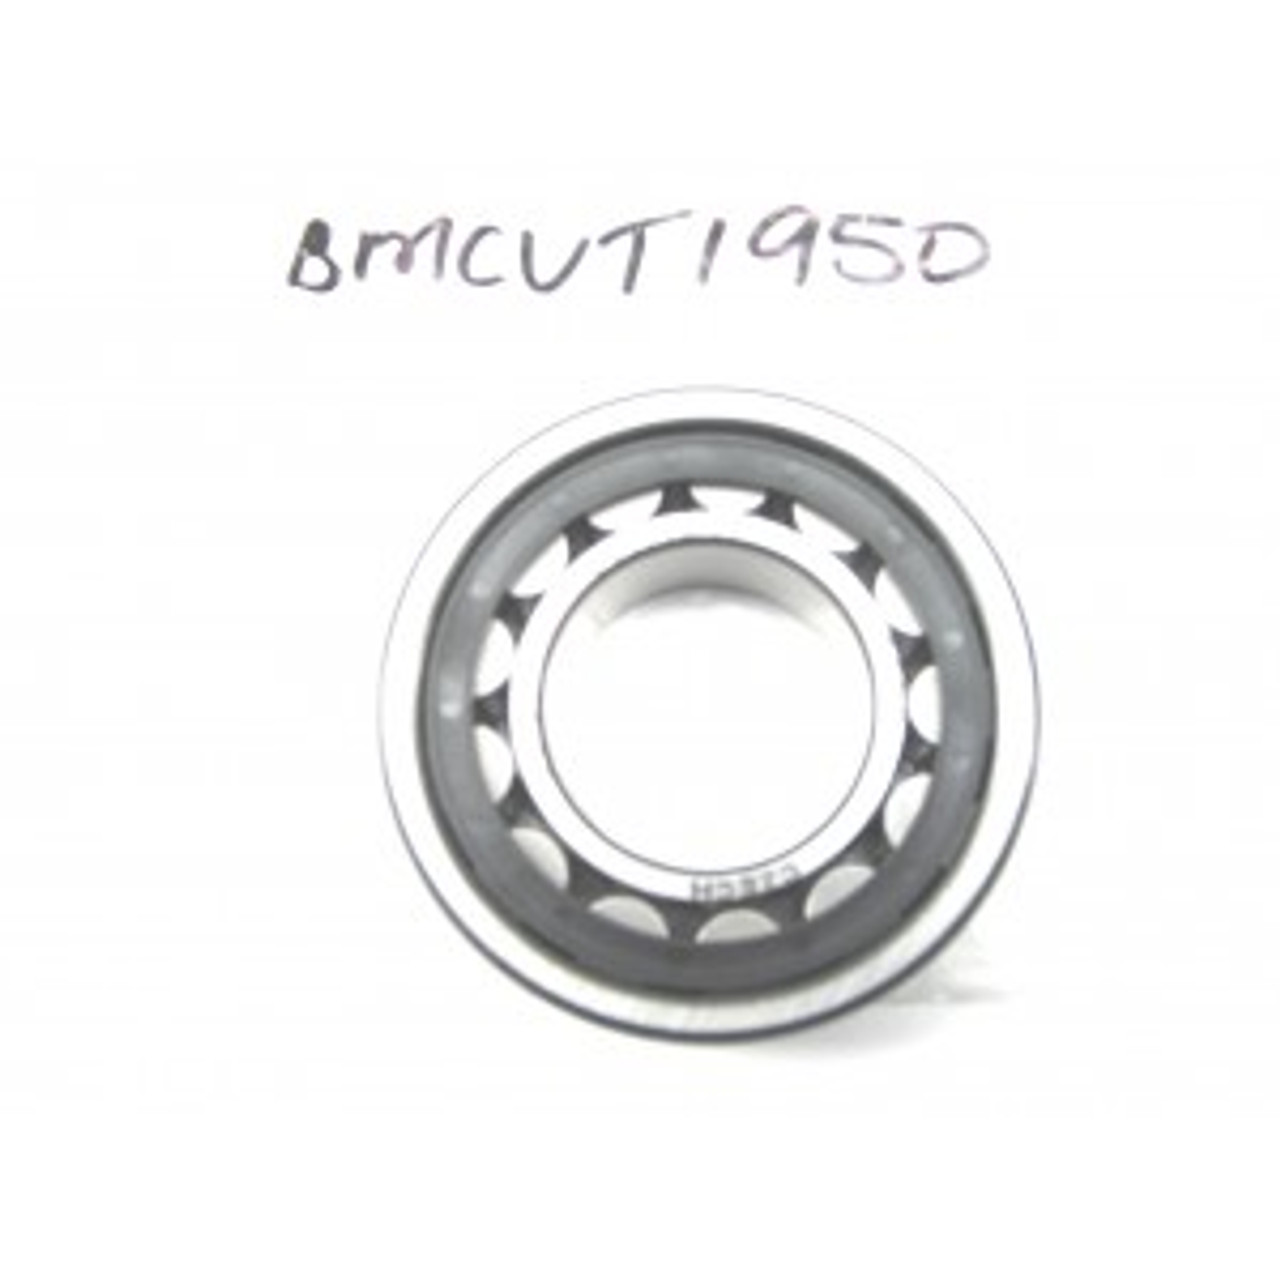 Secondary Pulley main Bearing